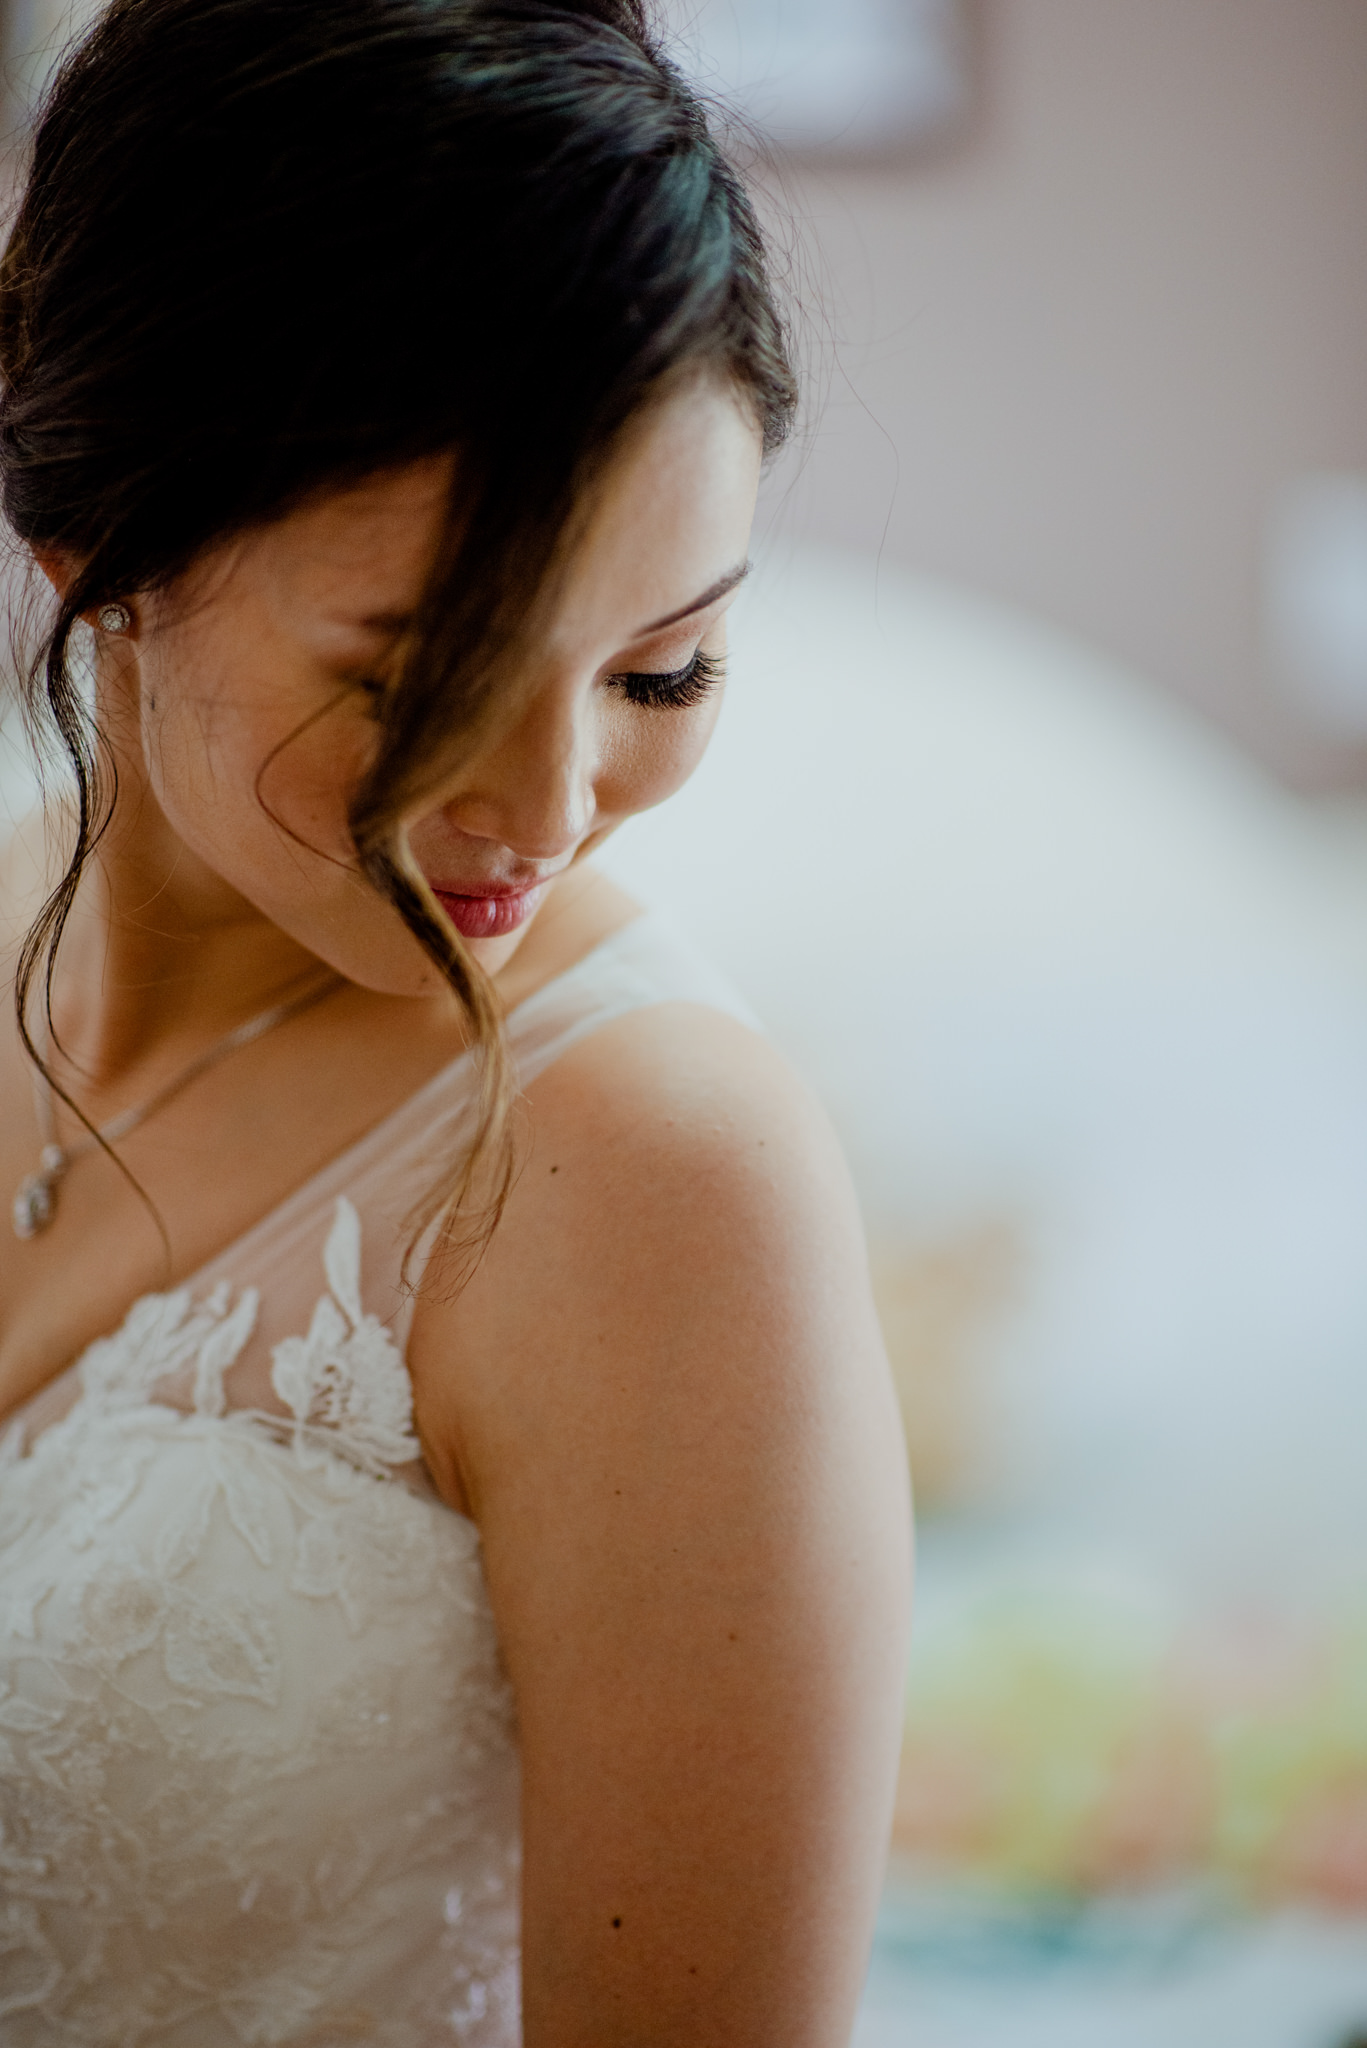 A bride gently looks down at her wedding dress and smiles